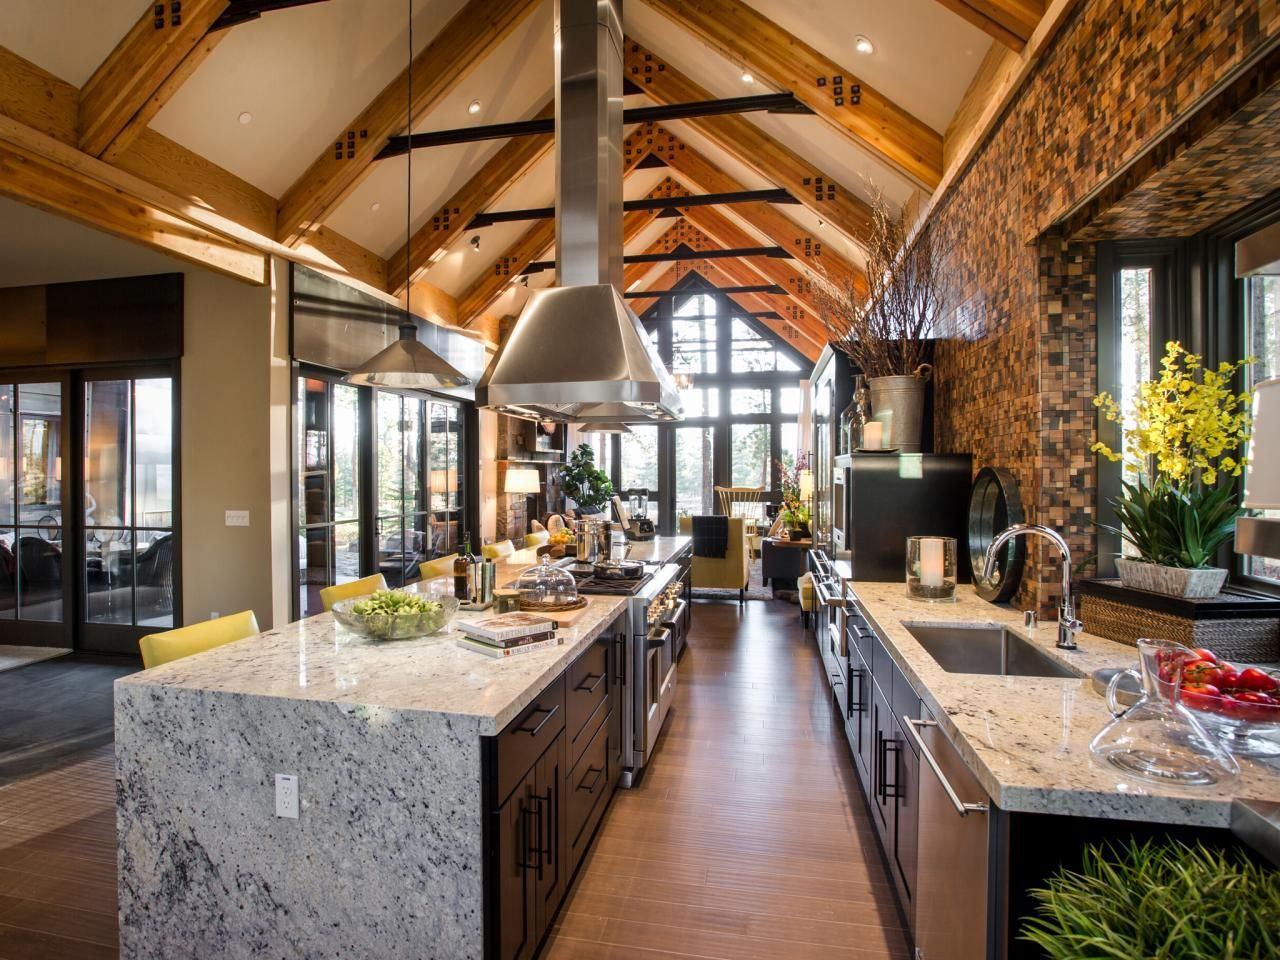 This kitchen of the hgtv dream home is the heart of the first